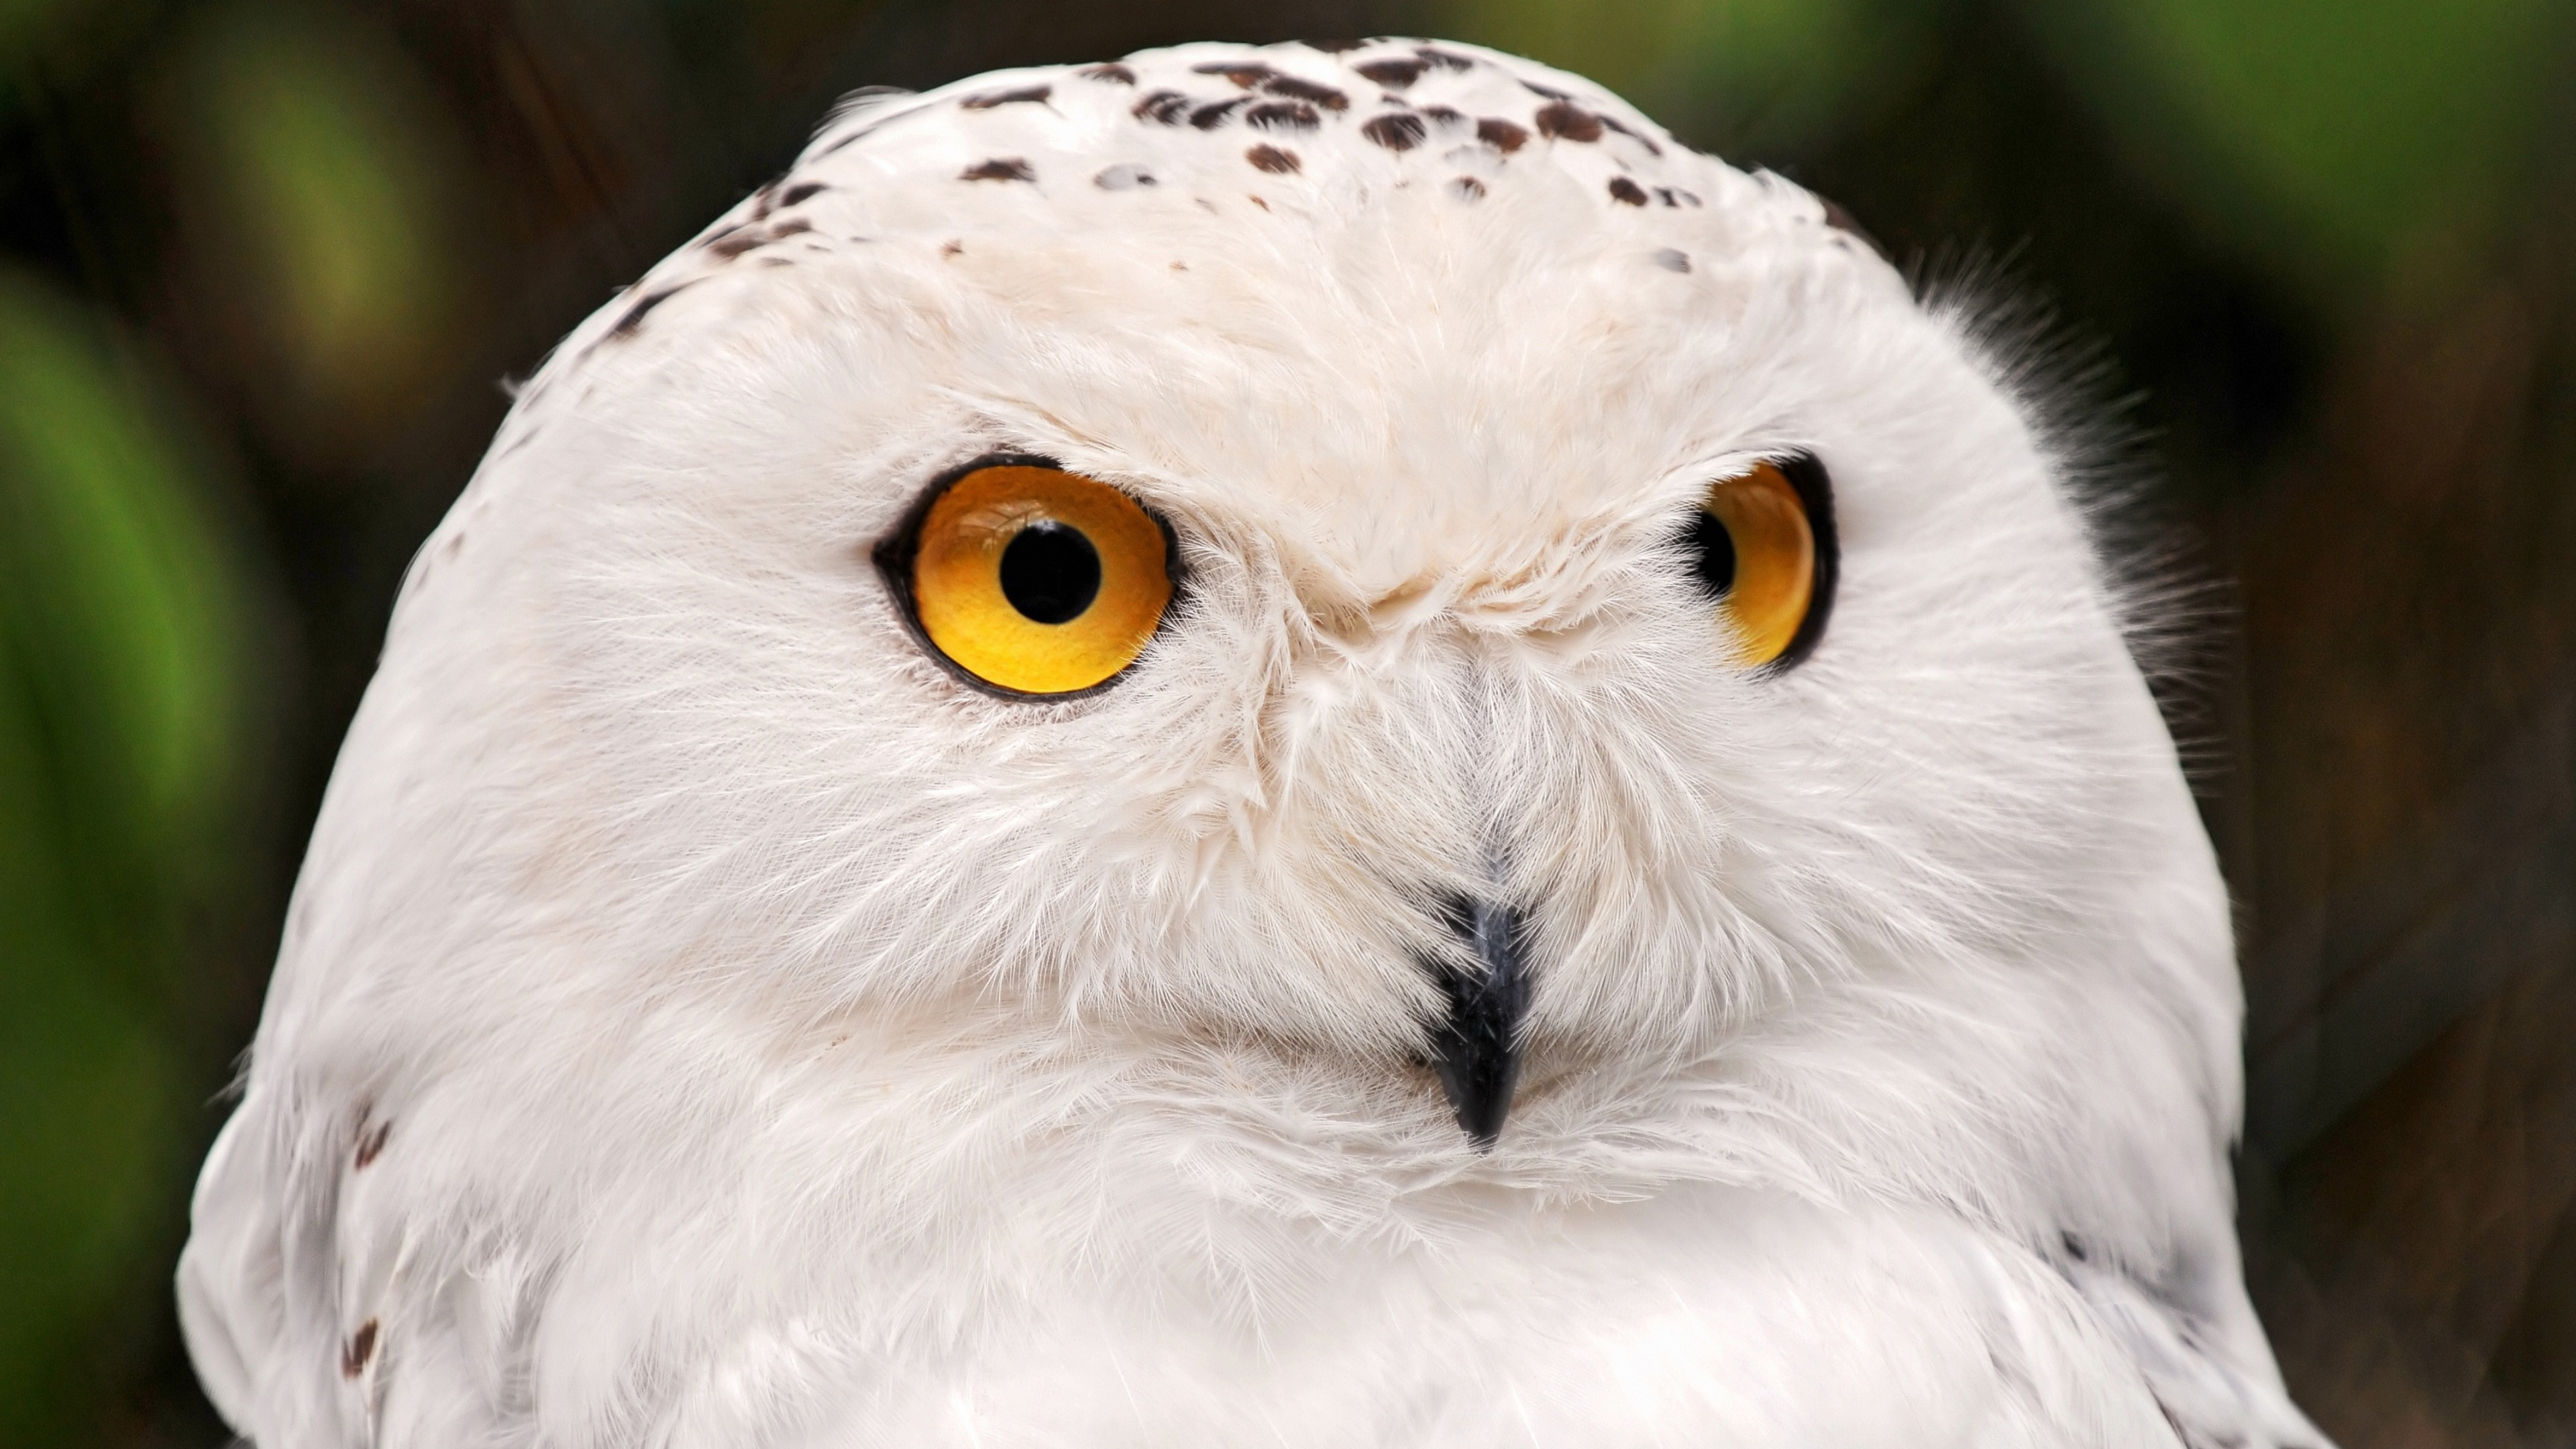 3d Cat Wallpapers Download Wallpaper Snowy Owl Yellow Eyes Portrait Wild Nature